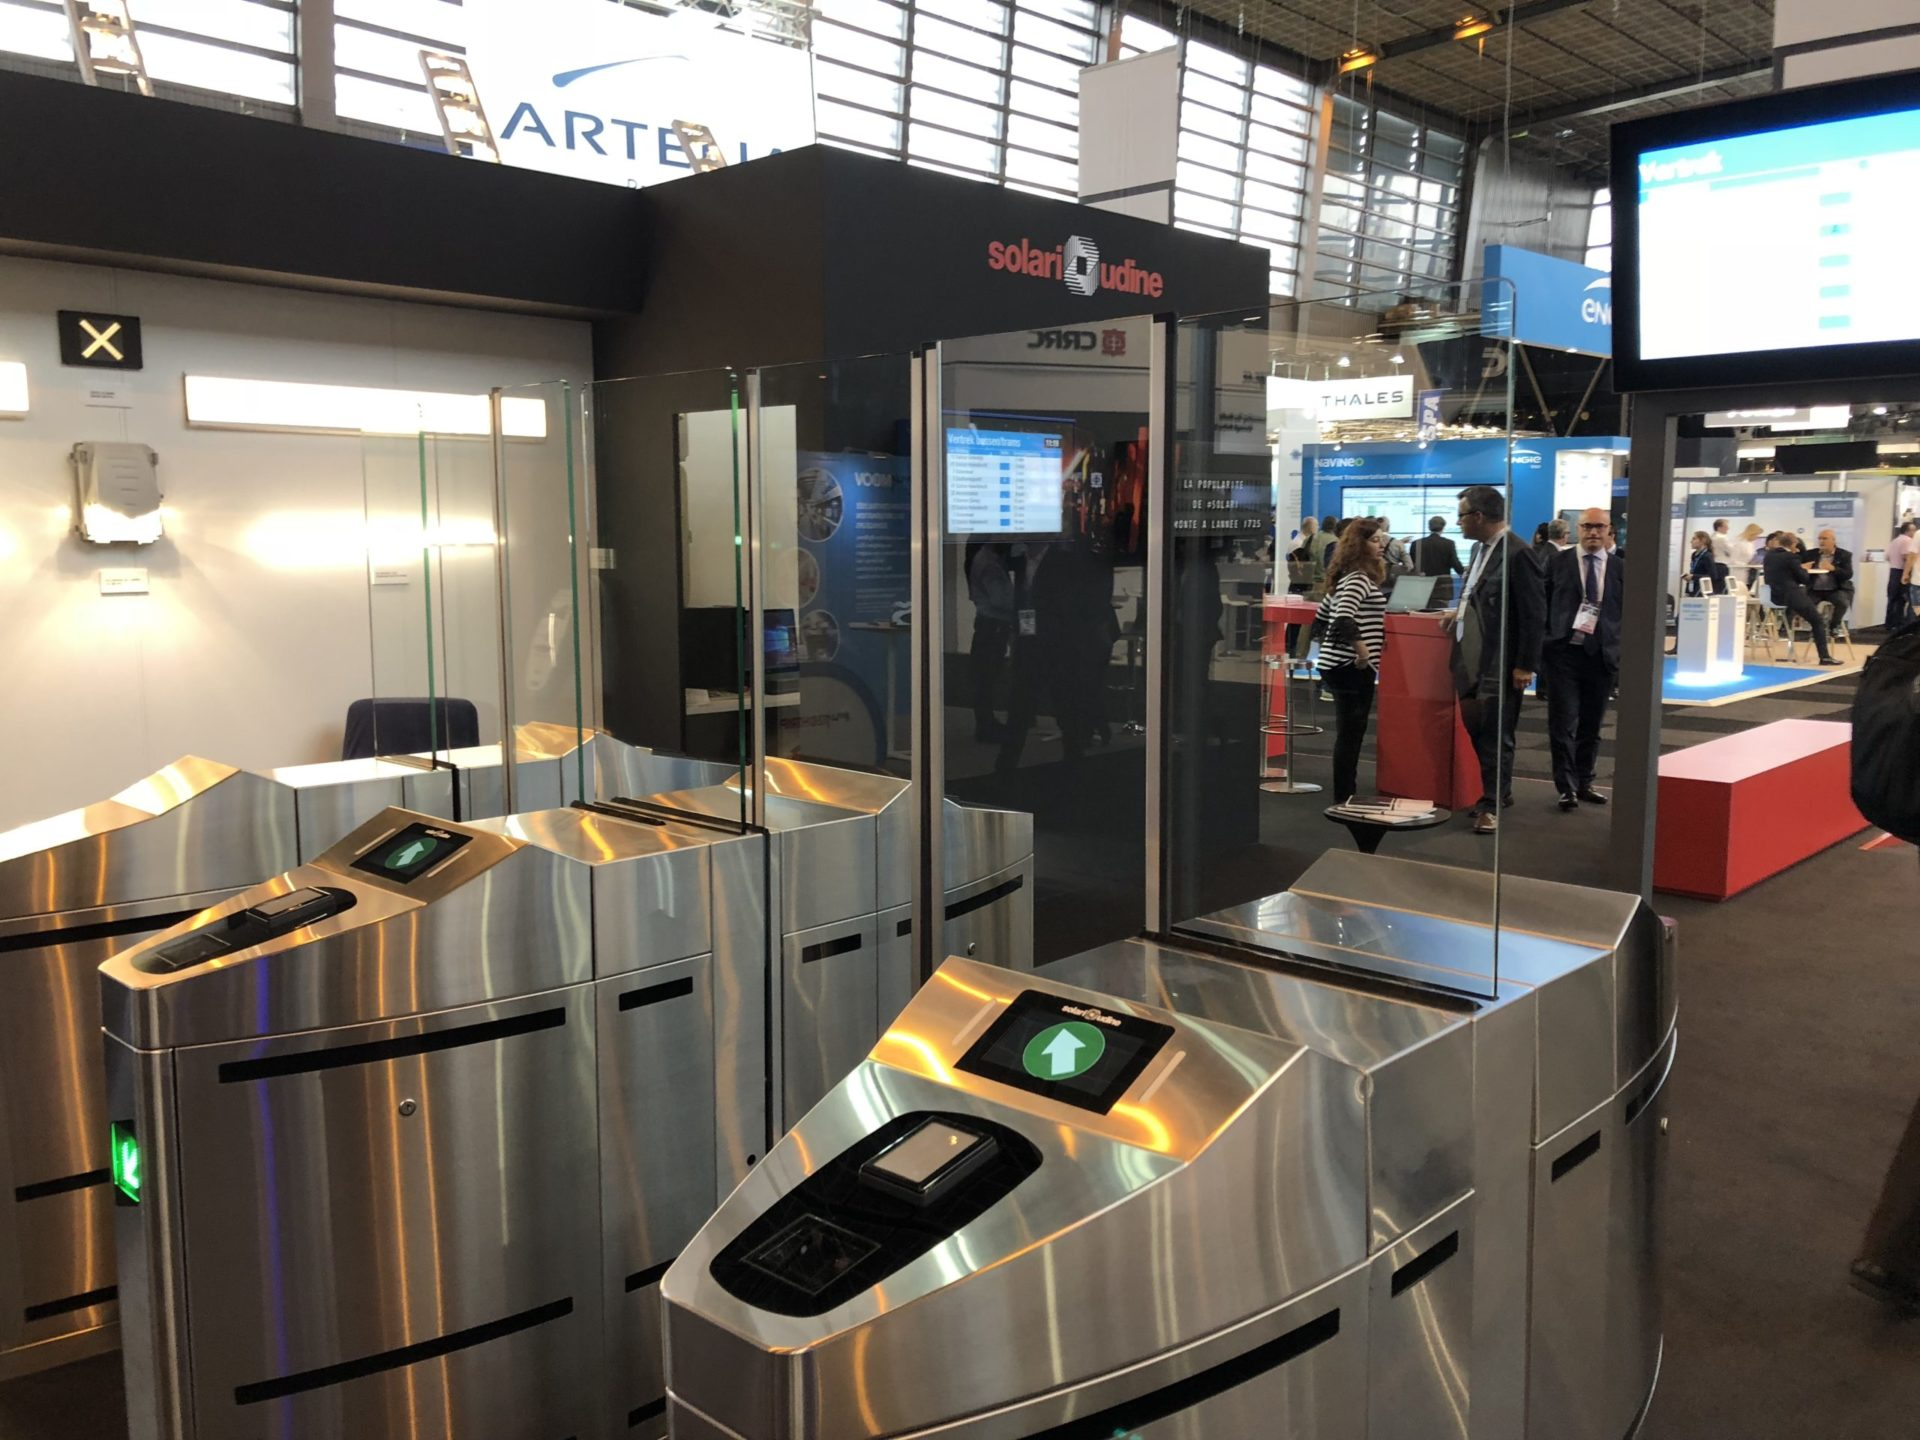 ticket-barrier-contra-vision